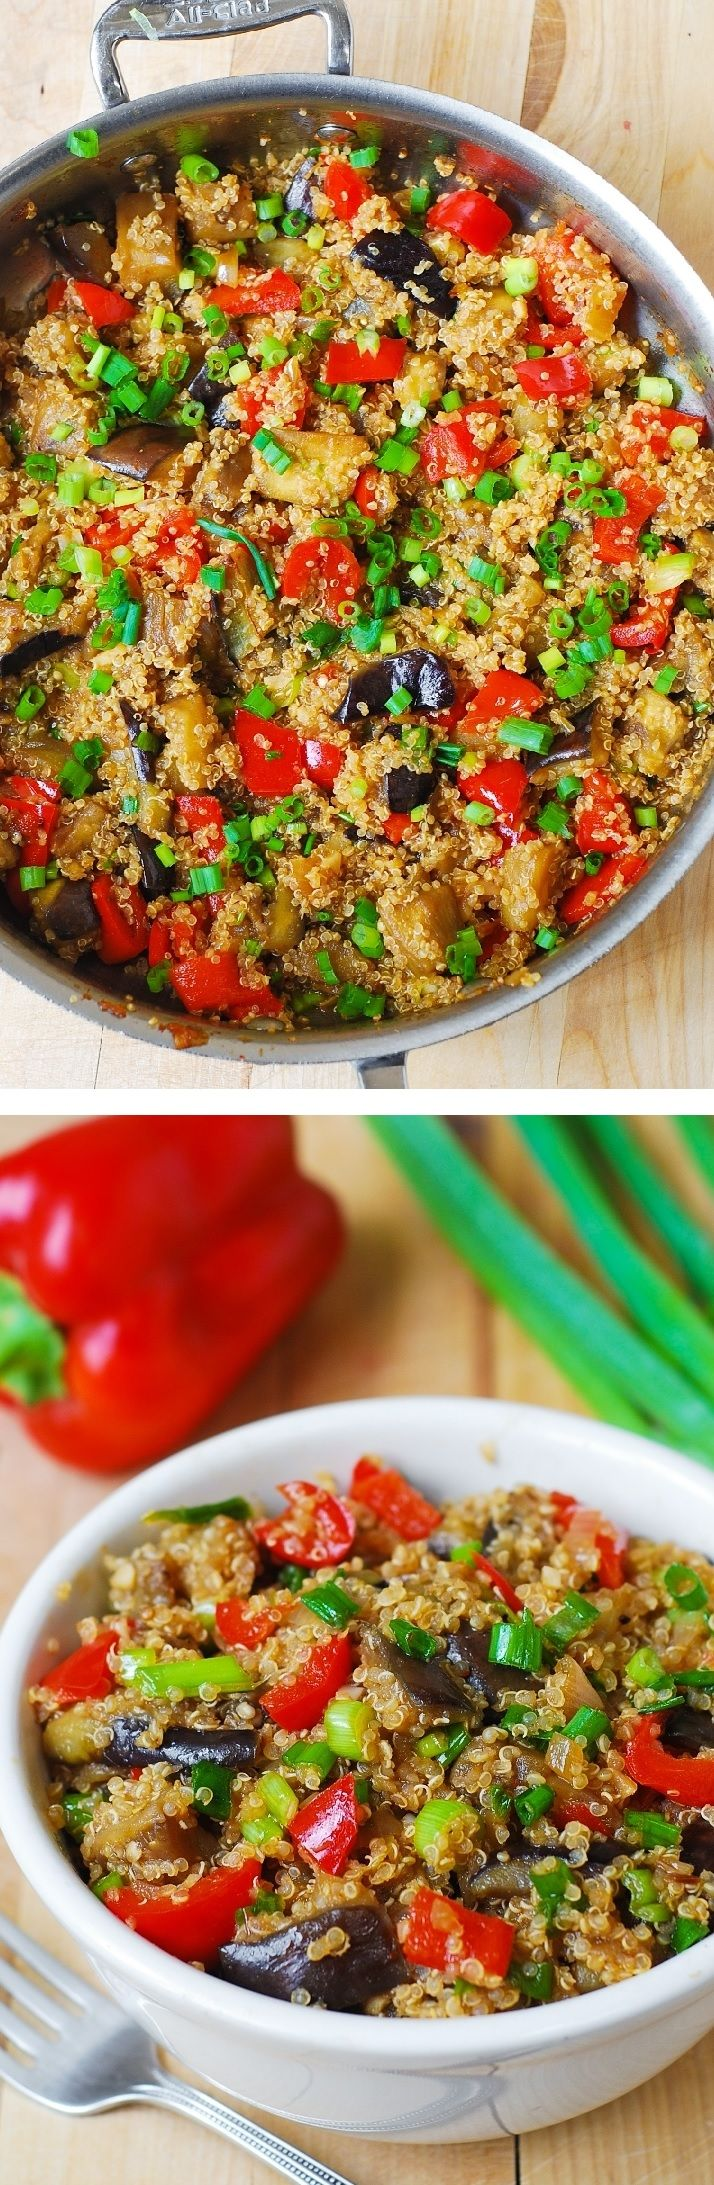 Stir-fried spicy Asian eggplant, with quinoa and veggies.  Healthy ingredients, gluten free, vegetarian, low carb, low fat recipe. Delicious! And, it takes just 30 minutes to make!